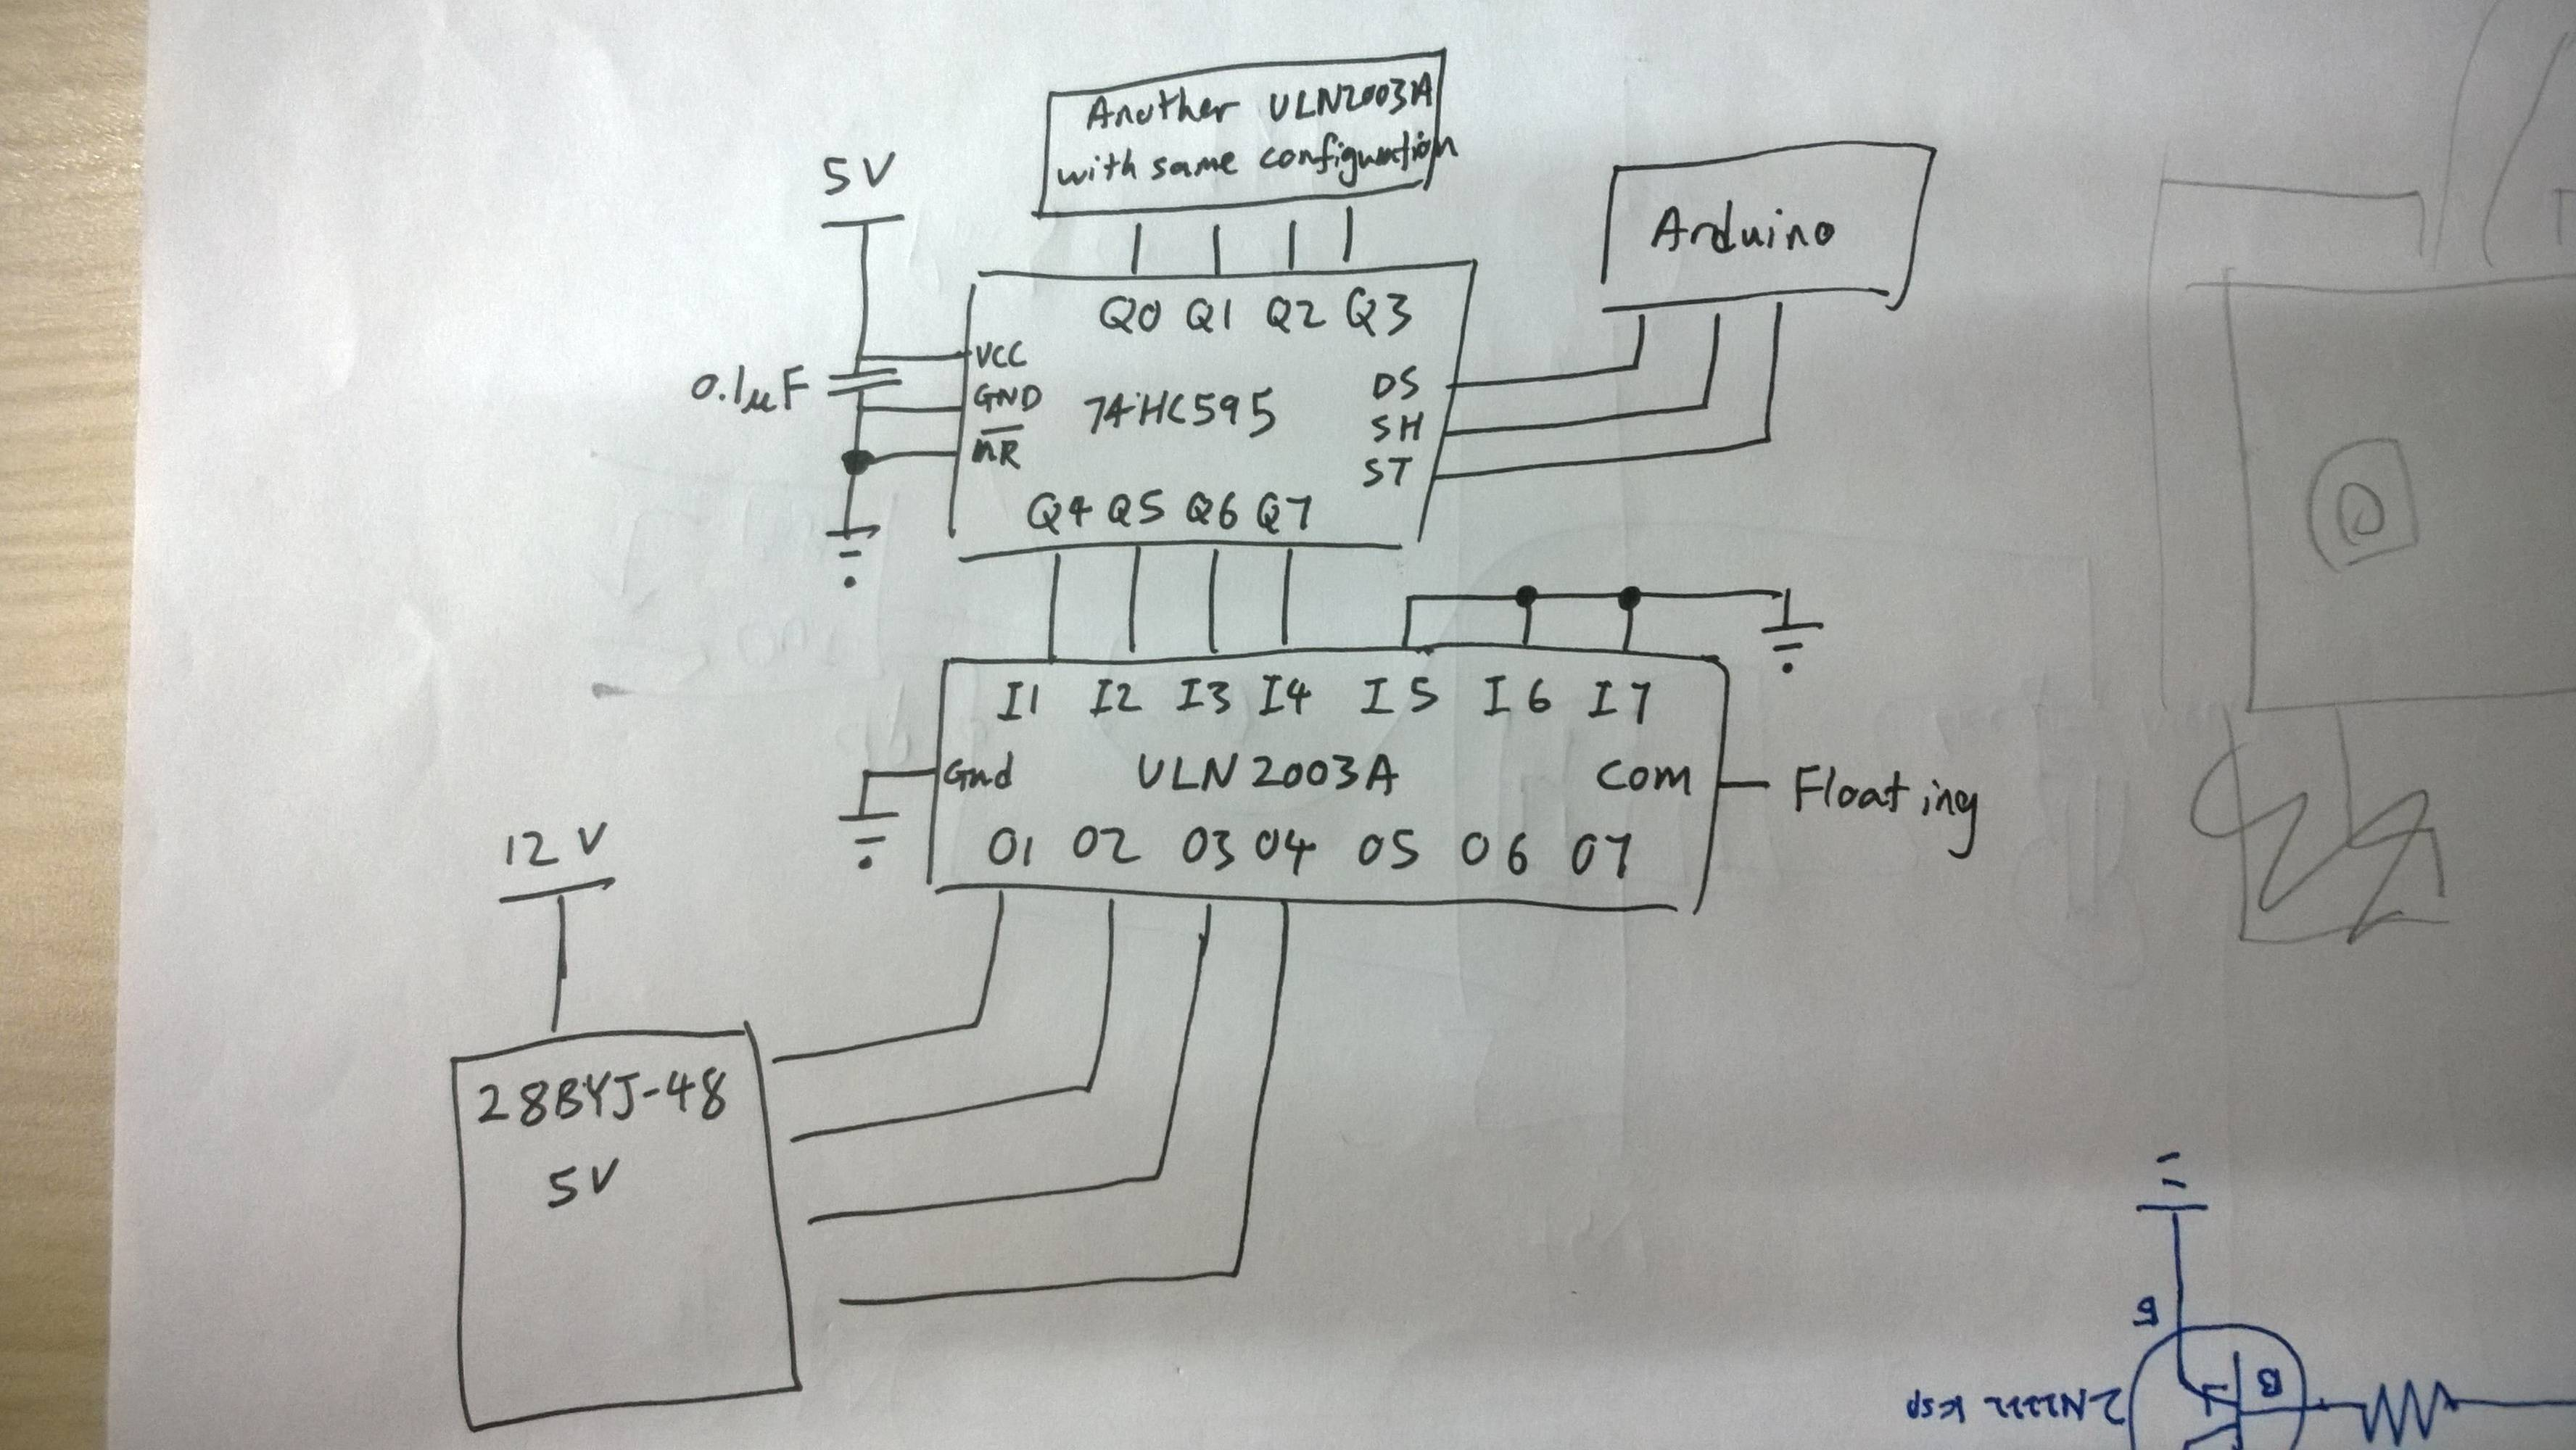 relay wire diagram sears lawn mower parts arduino - 74hc595 + uln2003a not driving stepper motor electrical engineering stack exchange